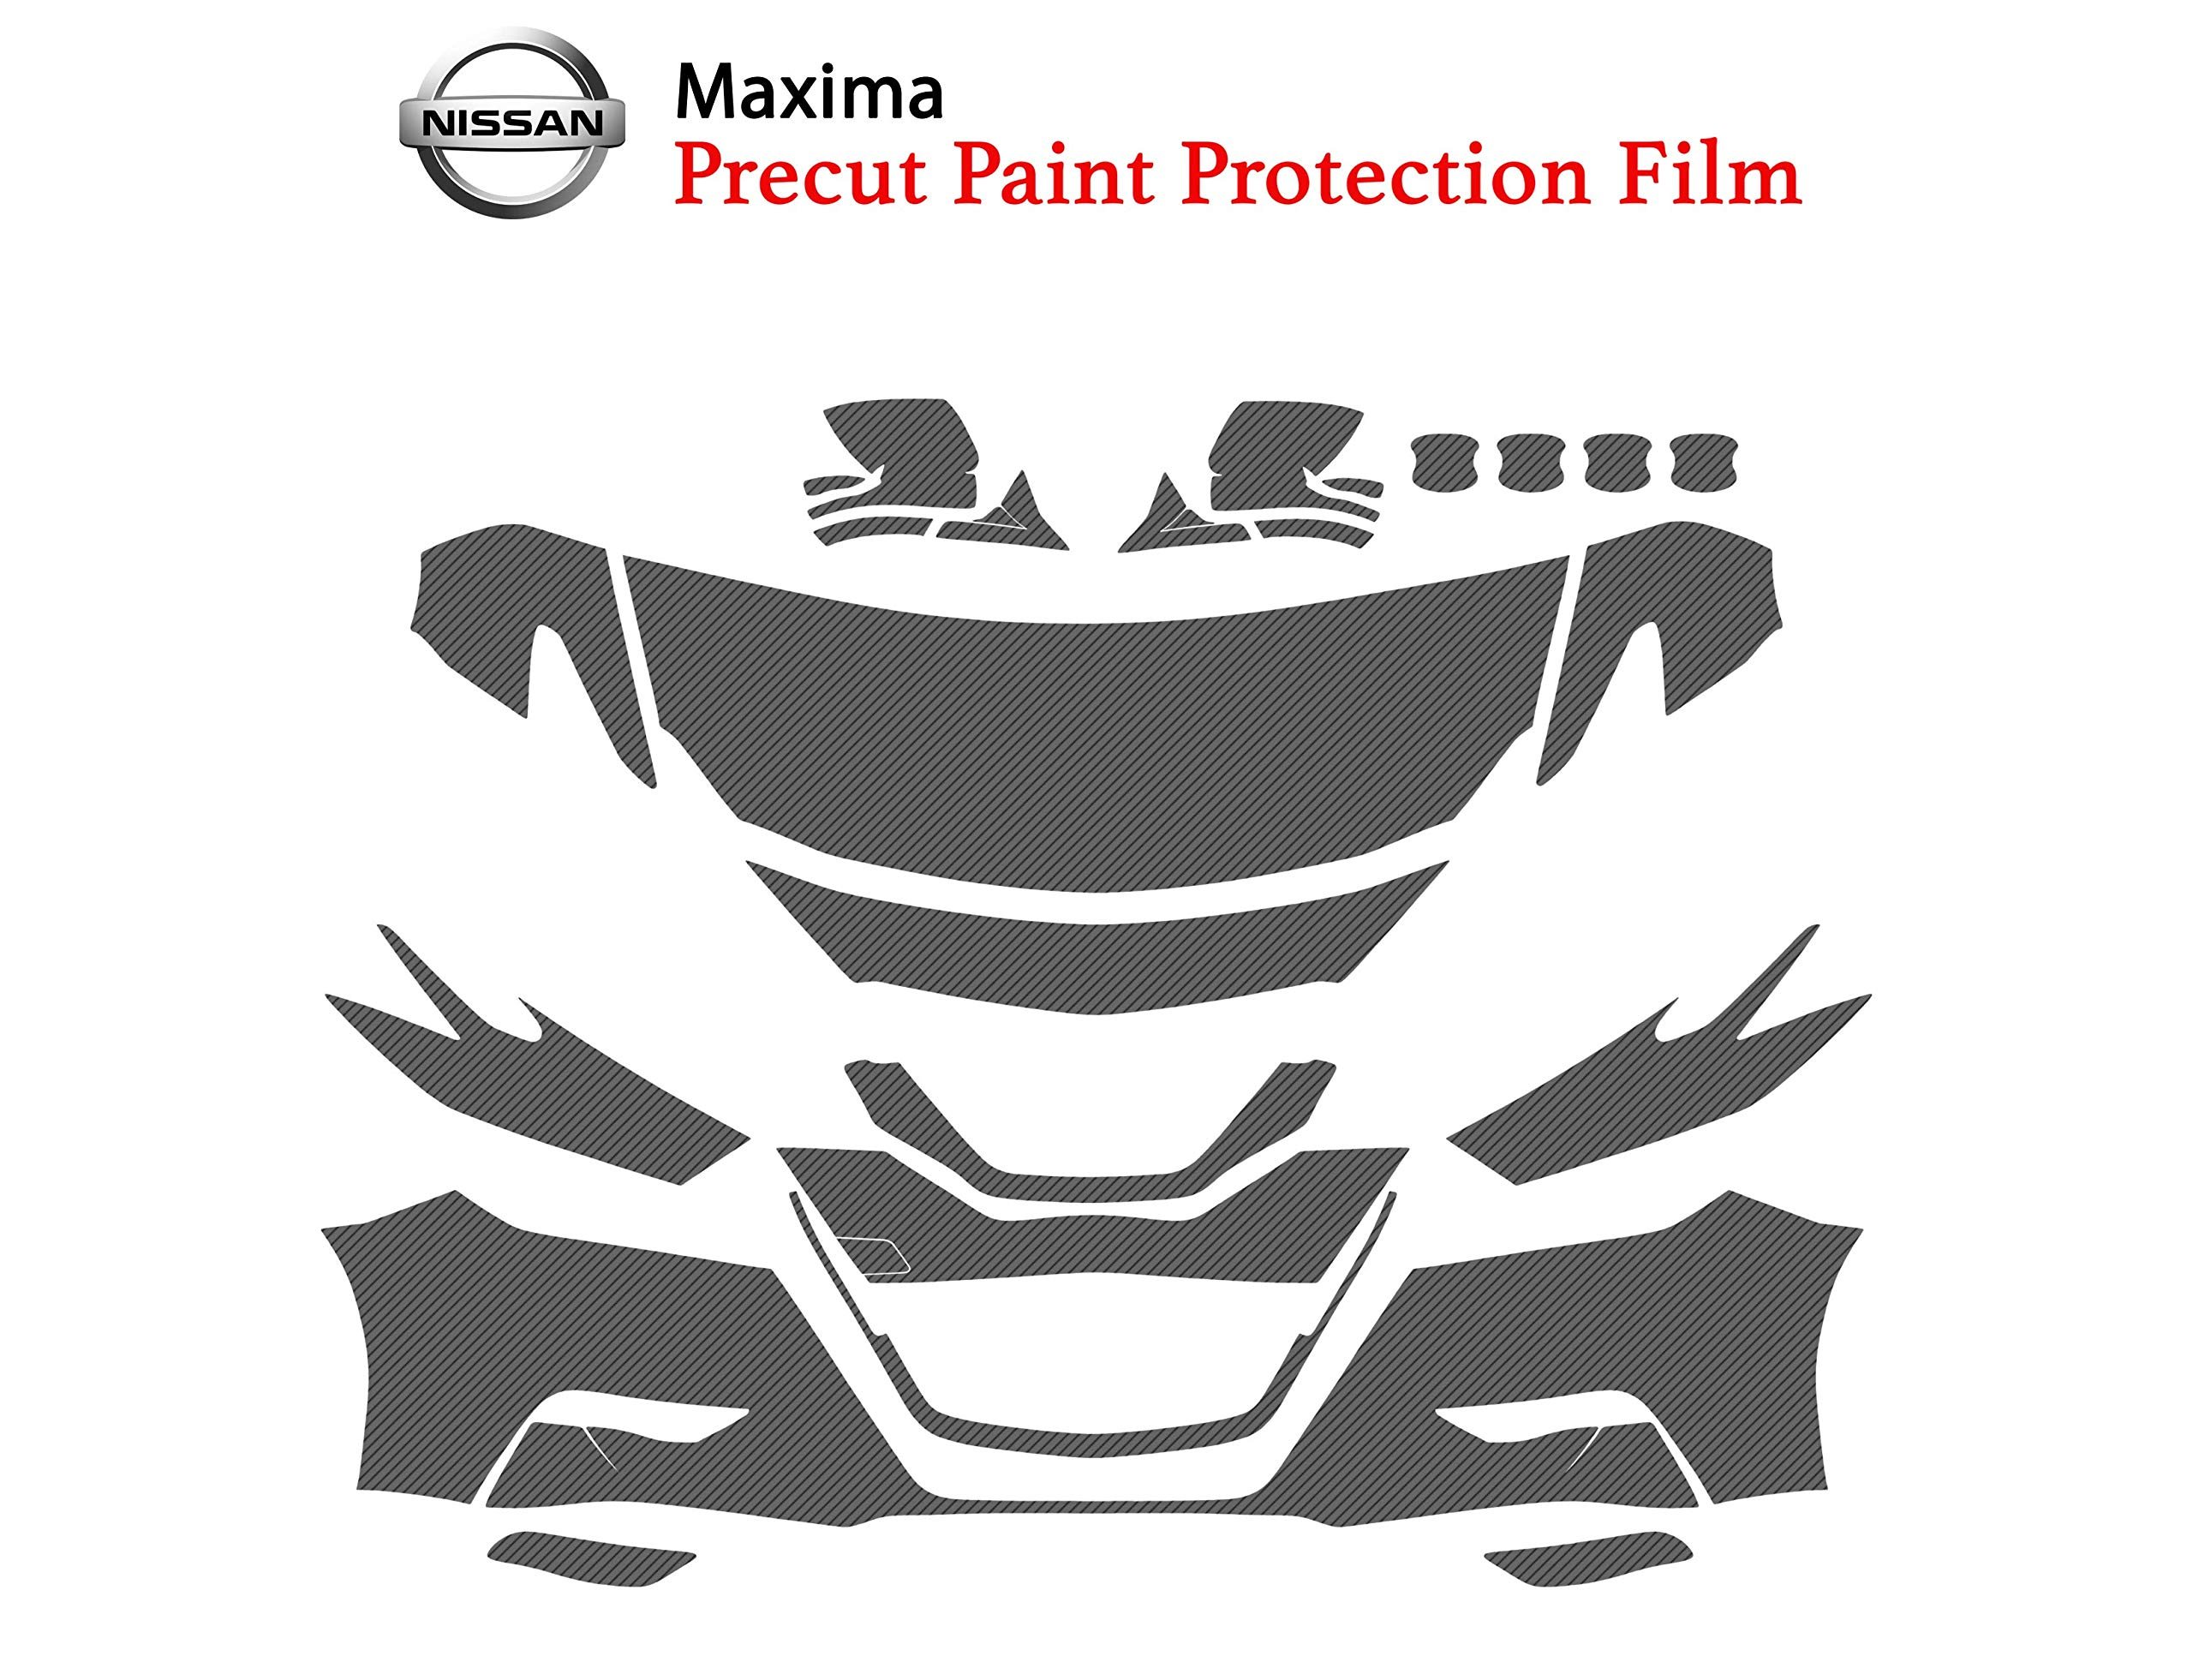 The Online Liquidator Precut Clear Bra Paint Protection Film Kit fits Nissan Maxima 2017-2019 - Full Front Vinyl Wrap Surface Safeguard Armor Cover